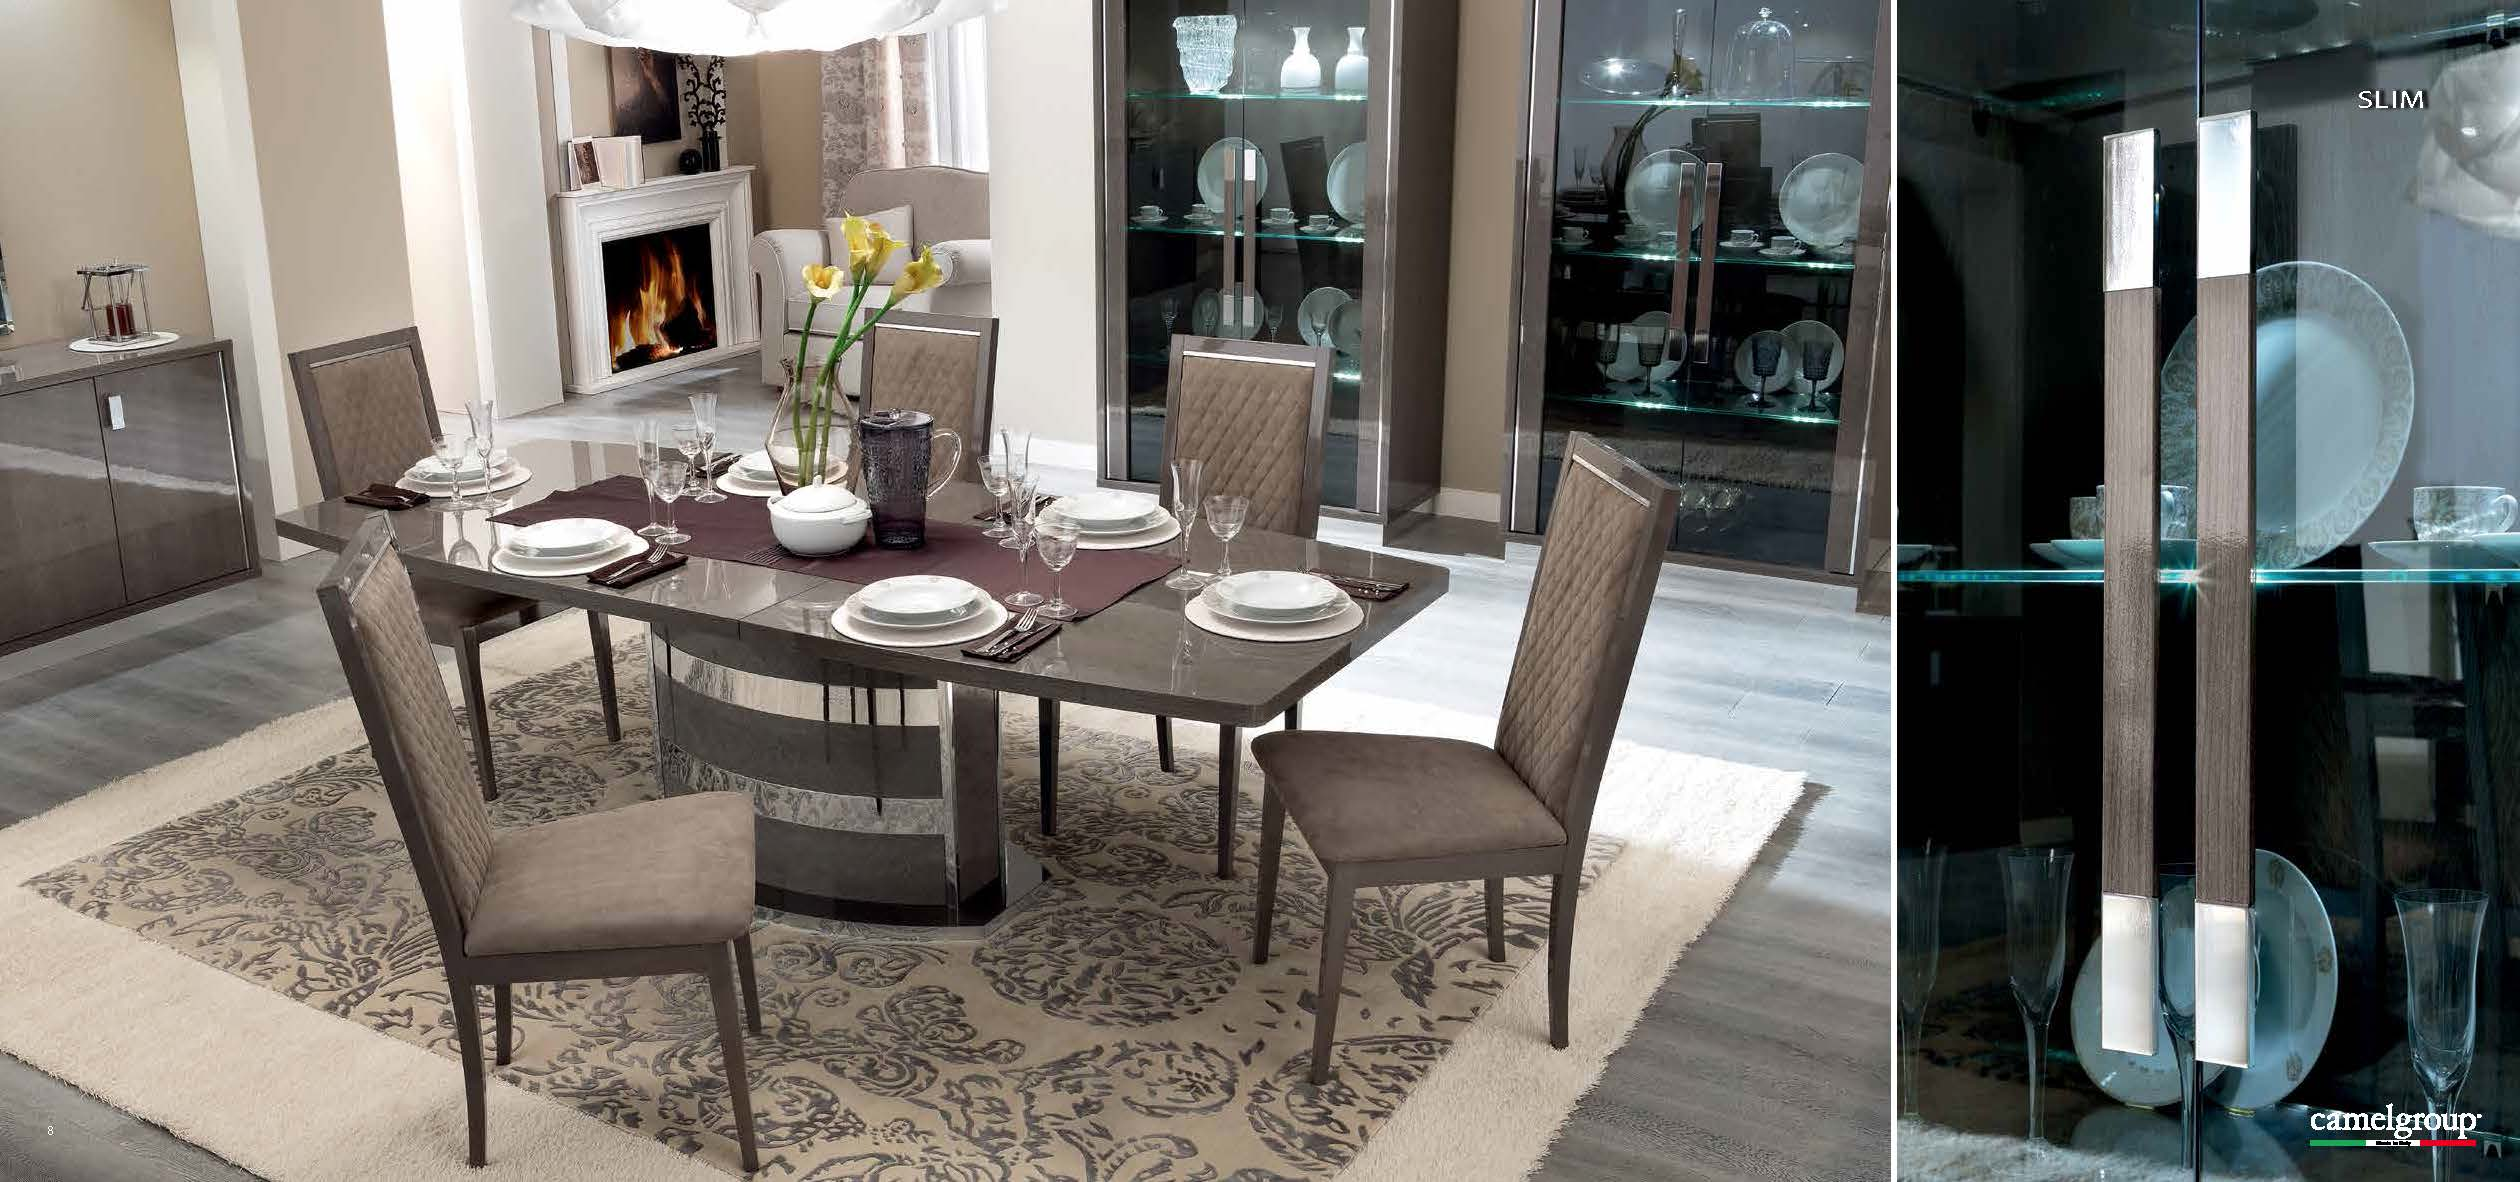 Platinum Slim Dining. Dining Room Furniture Modern Formal ...